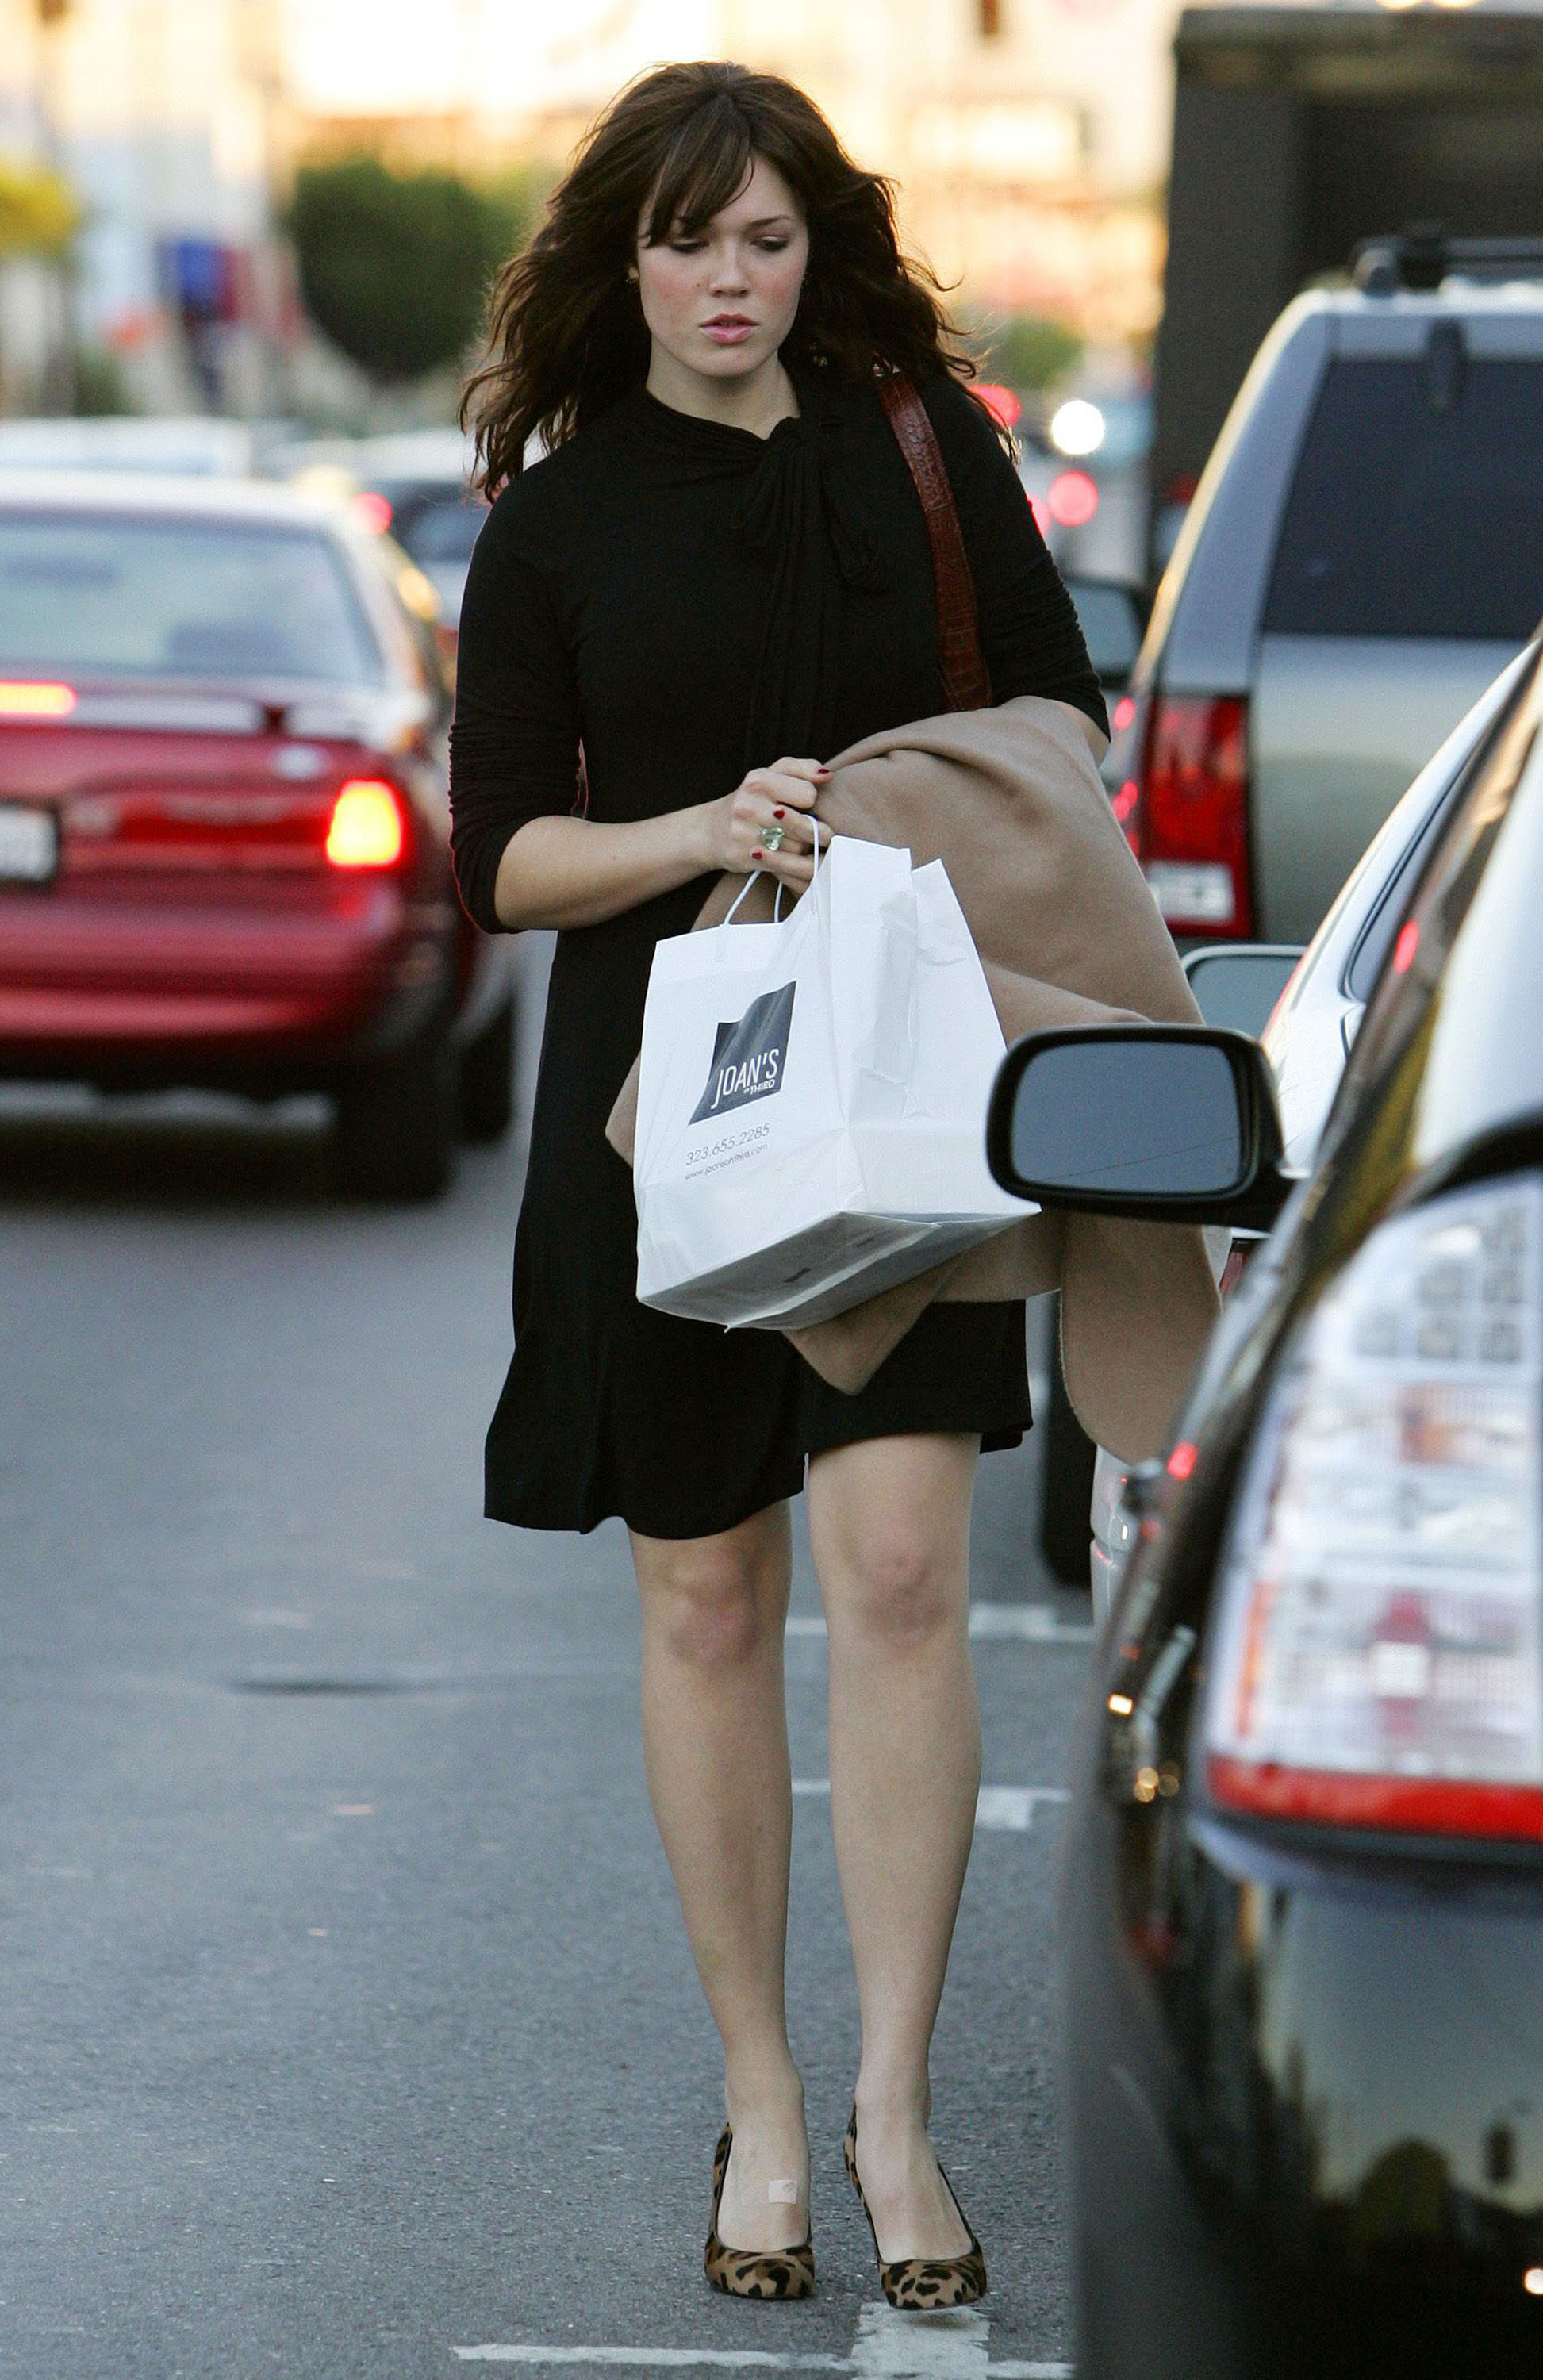 67279_celeb-city.eu_Mandy_Moore_out_and_about_in_West_Hollywood_10.12.2007_10_122_1185lo.jpg